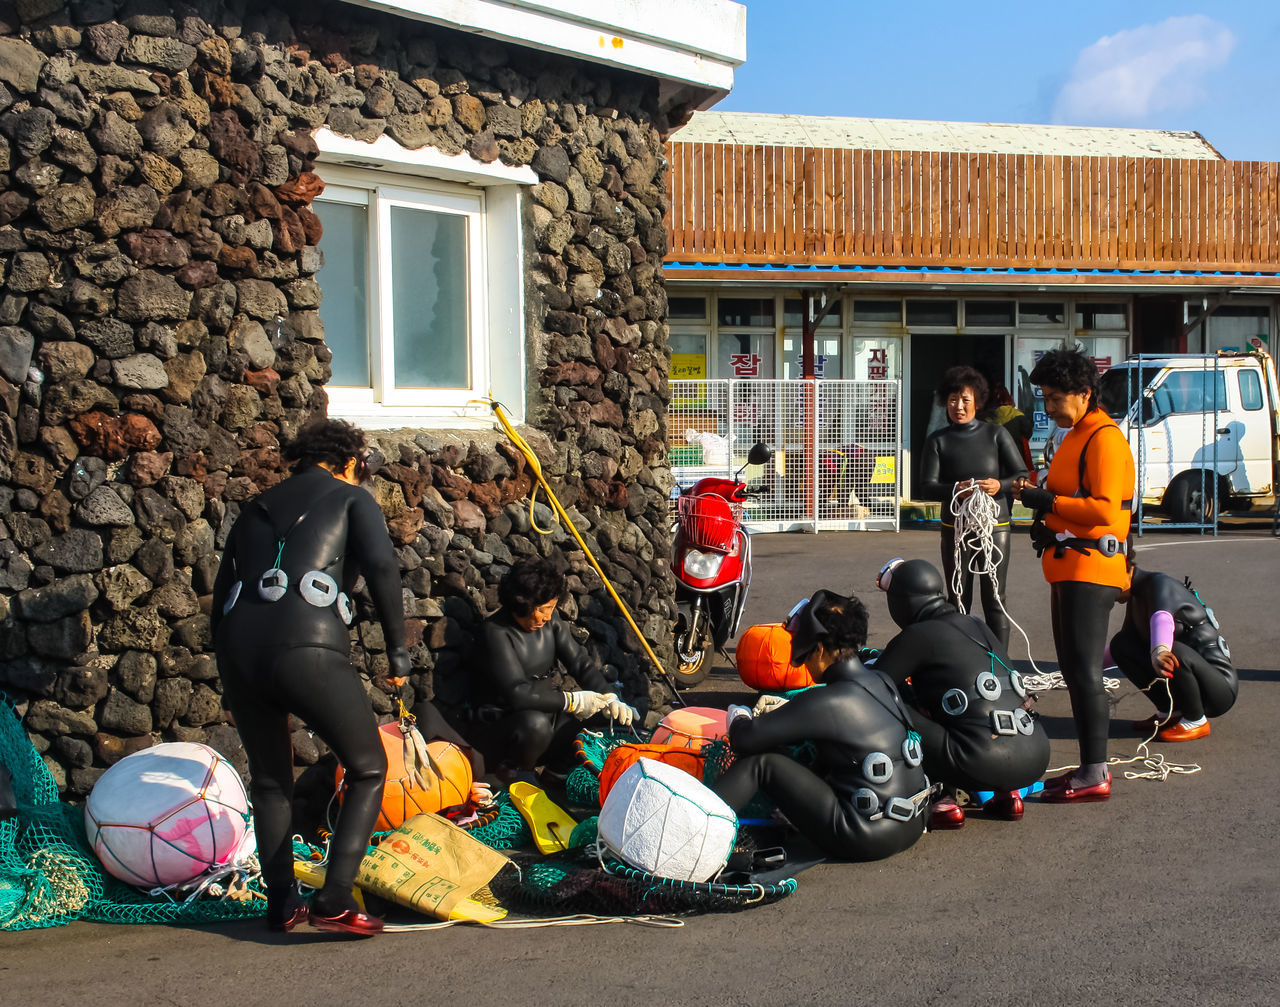 Women diver; Haenyeo at Jeju Island who dive in deep sea without using oxygen tank to search for pearl. Most of them are breadwinner for their family. Architecture Built Structure Casual Clothing City City Life Day Girl Power Haenyeo JEJU ISLAND  Leisure Activity Lifestyles Medium Group Of People Men Outdoors Sky Women Diver People Of The Oceans Girl Power Pearl Breadwinner Dive Working Net Everyday Emotion